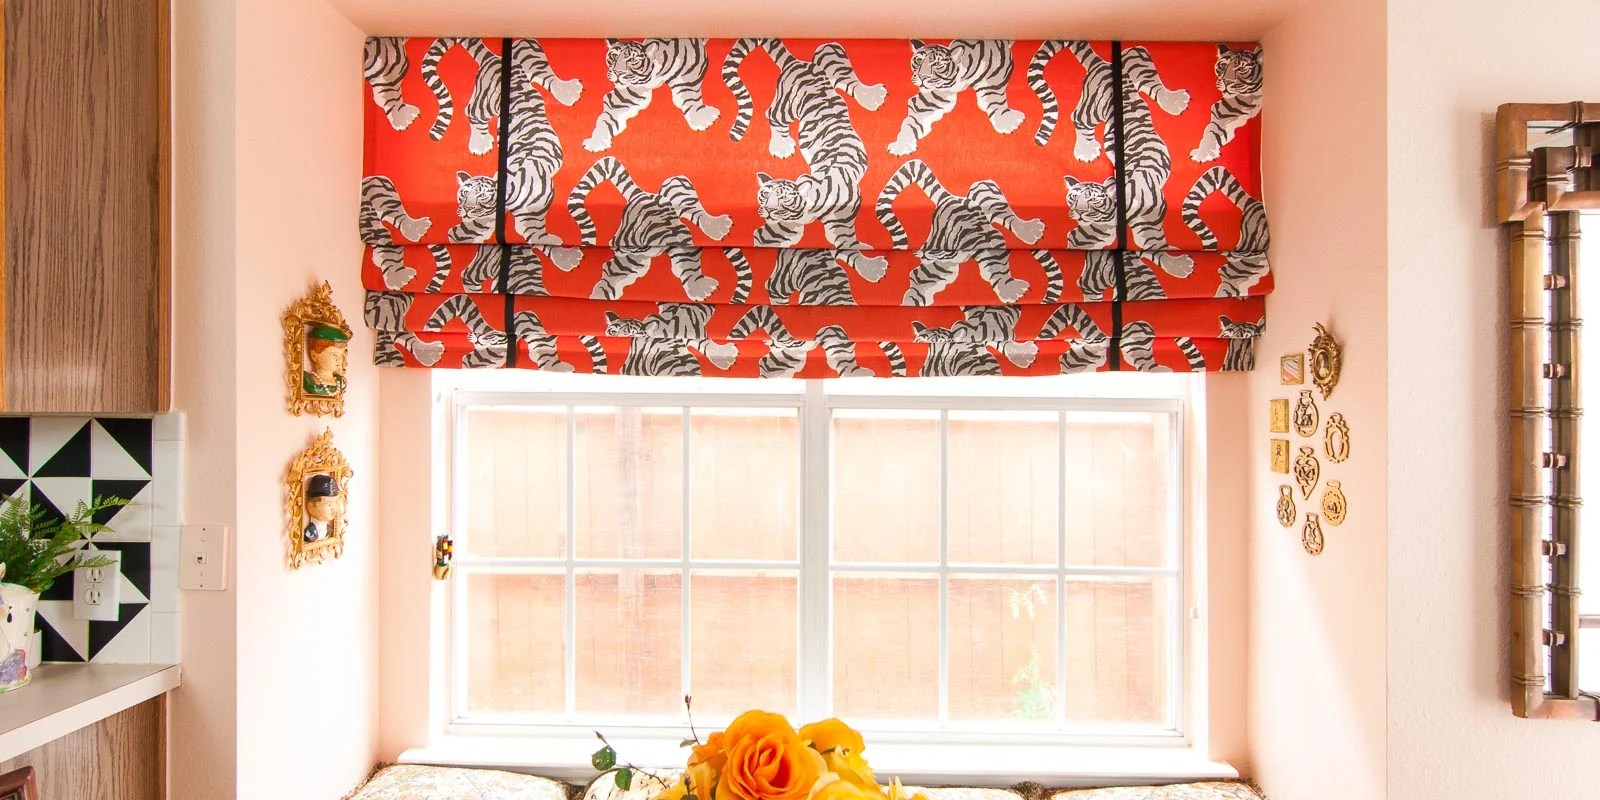 Diy Roman Shades Easy Diy Faux Roman Shade The Gathered Home